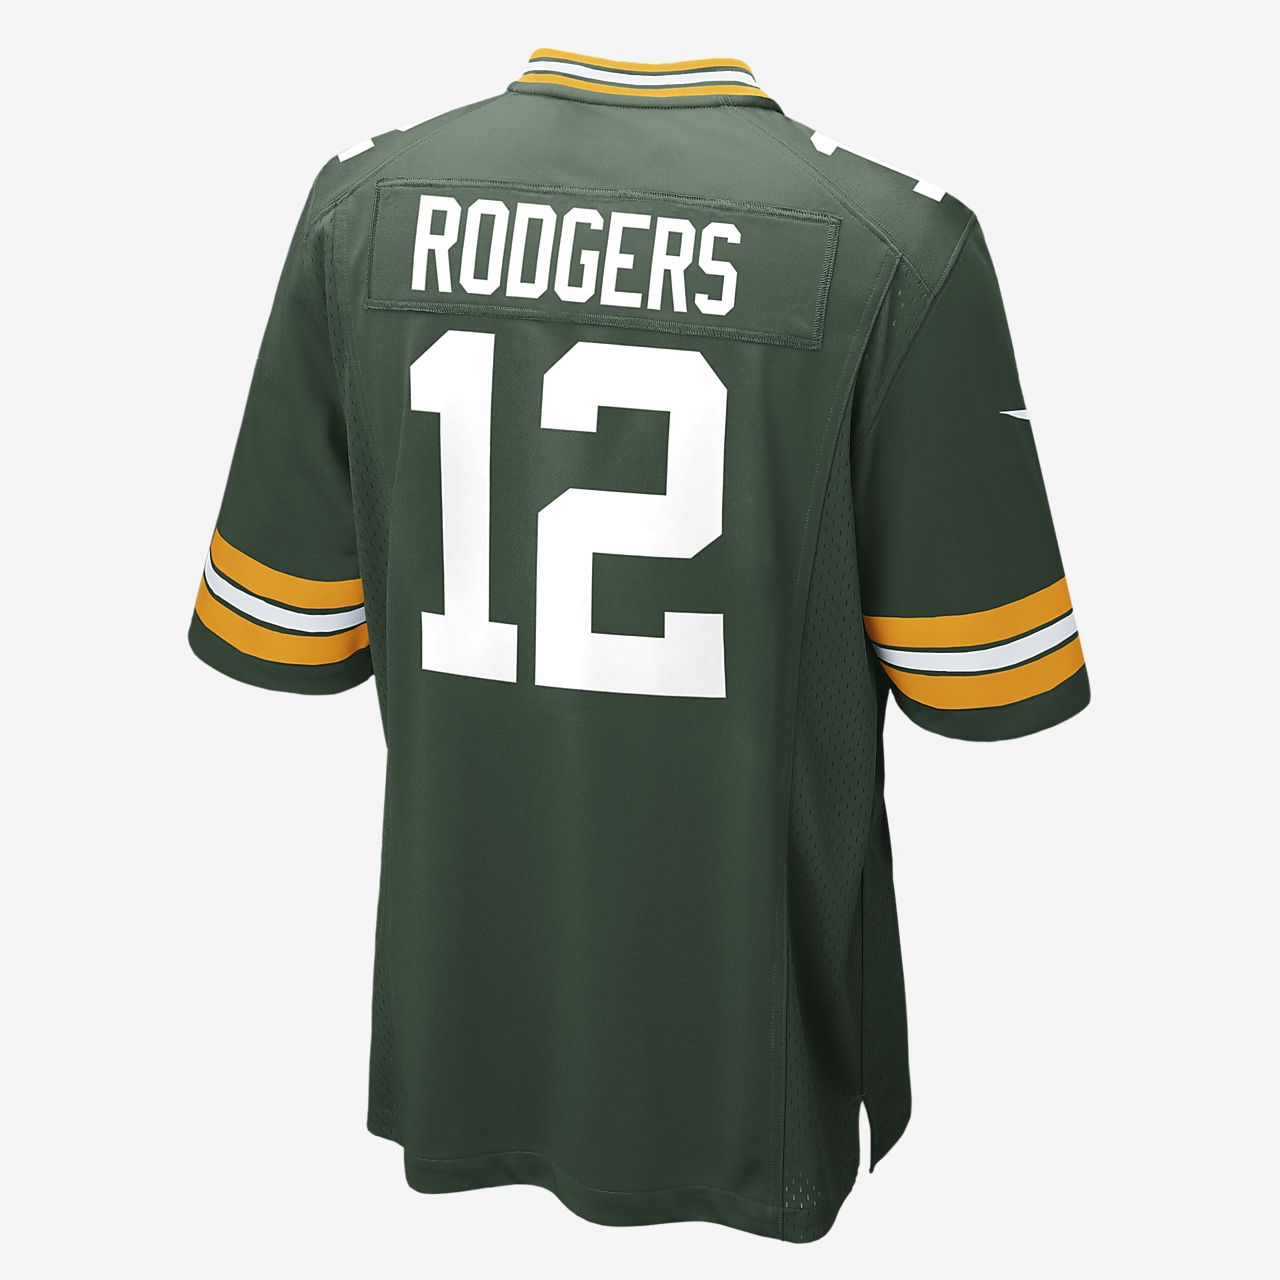 95c6138f NFL Green Bay Packers (Aaron Rodgers) Kids' Football Home Game Jersey